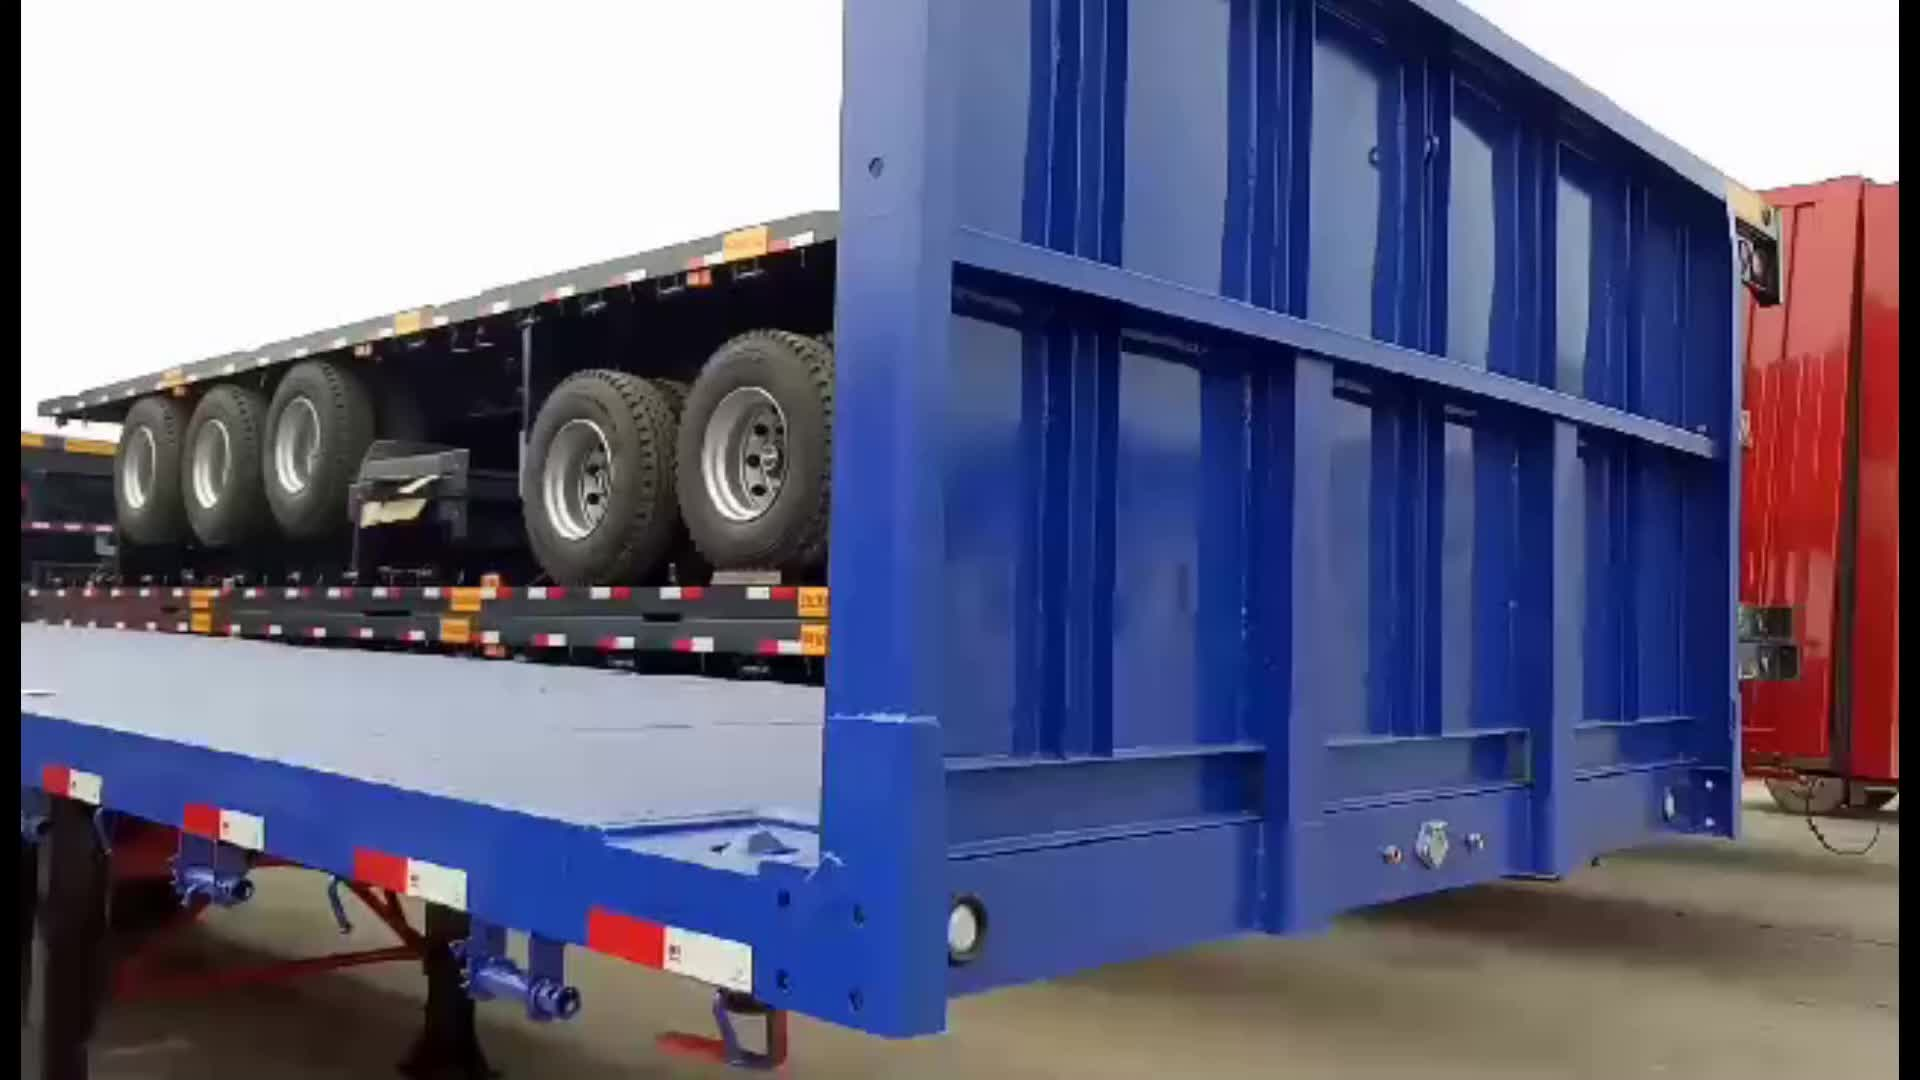 Hot sale 40ft flatbed container trailer price in India